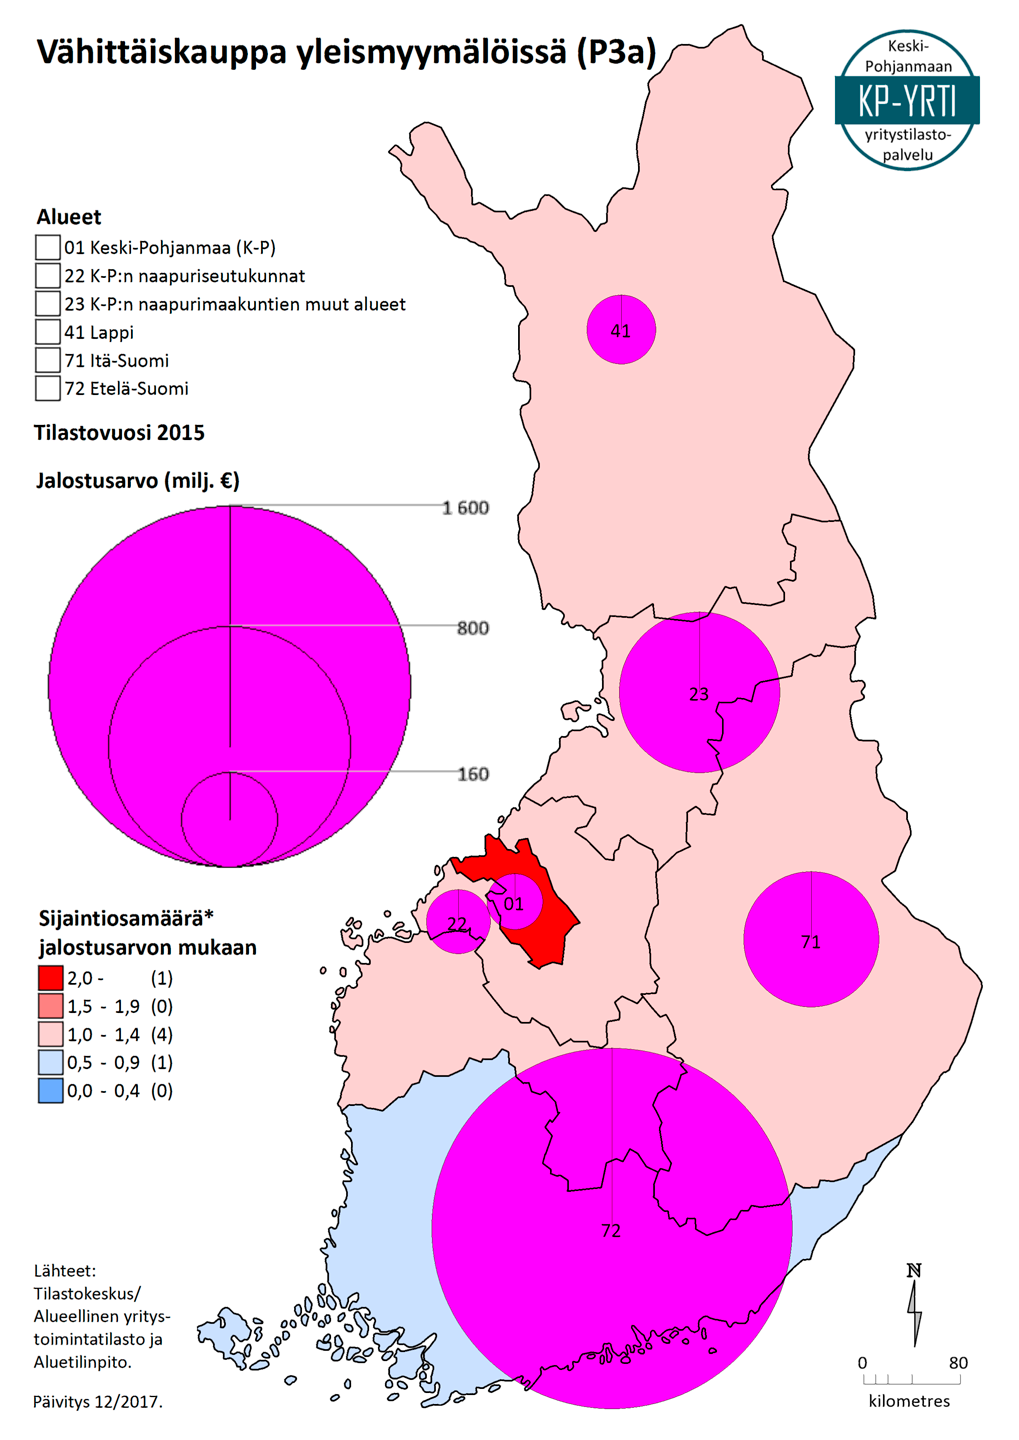 53-P3a-map-ja-2015-p201712.png